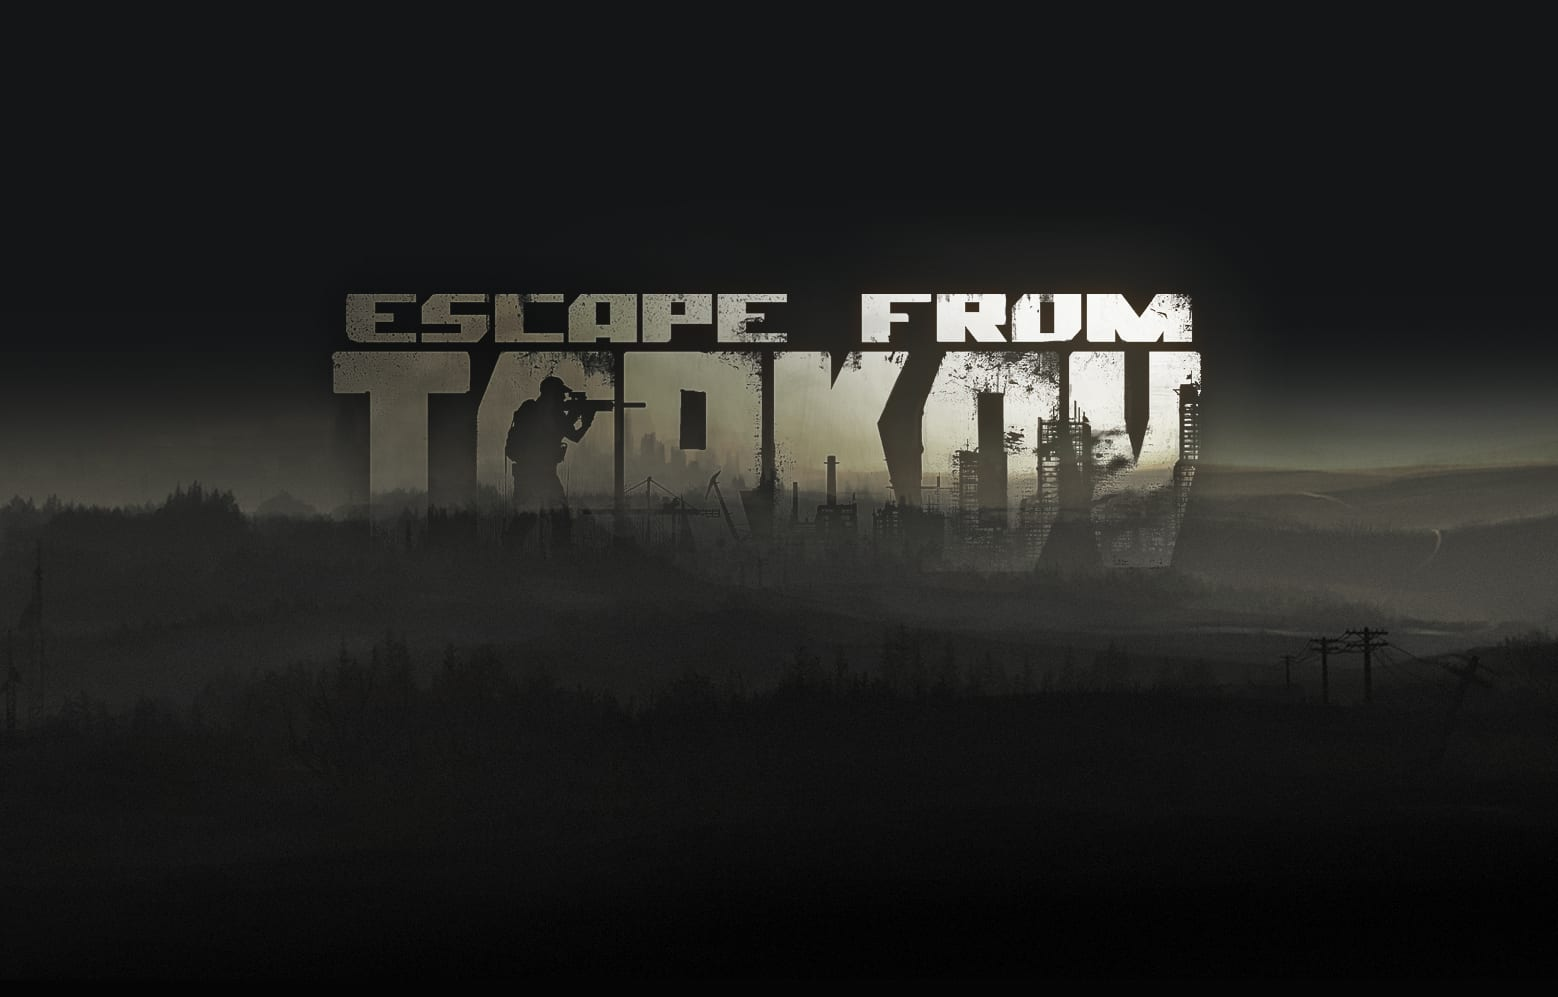 escape from tarkov, weapon safe key